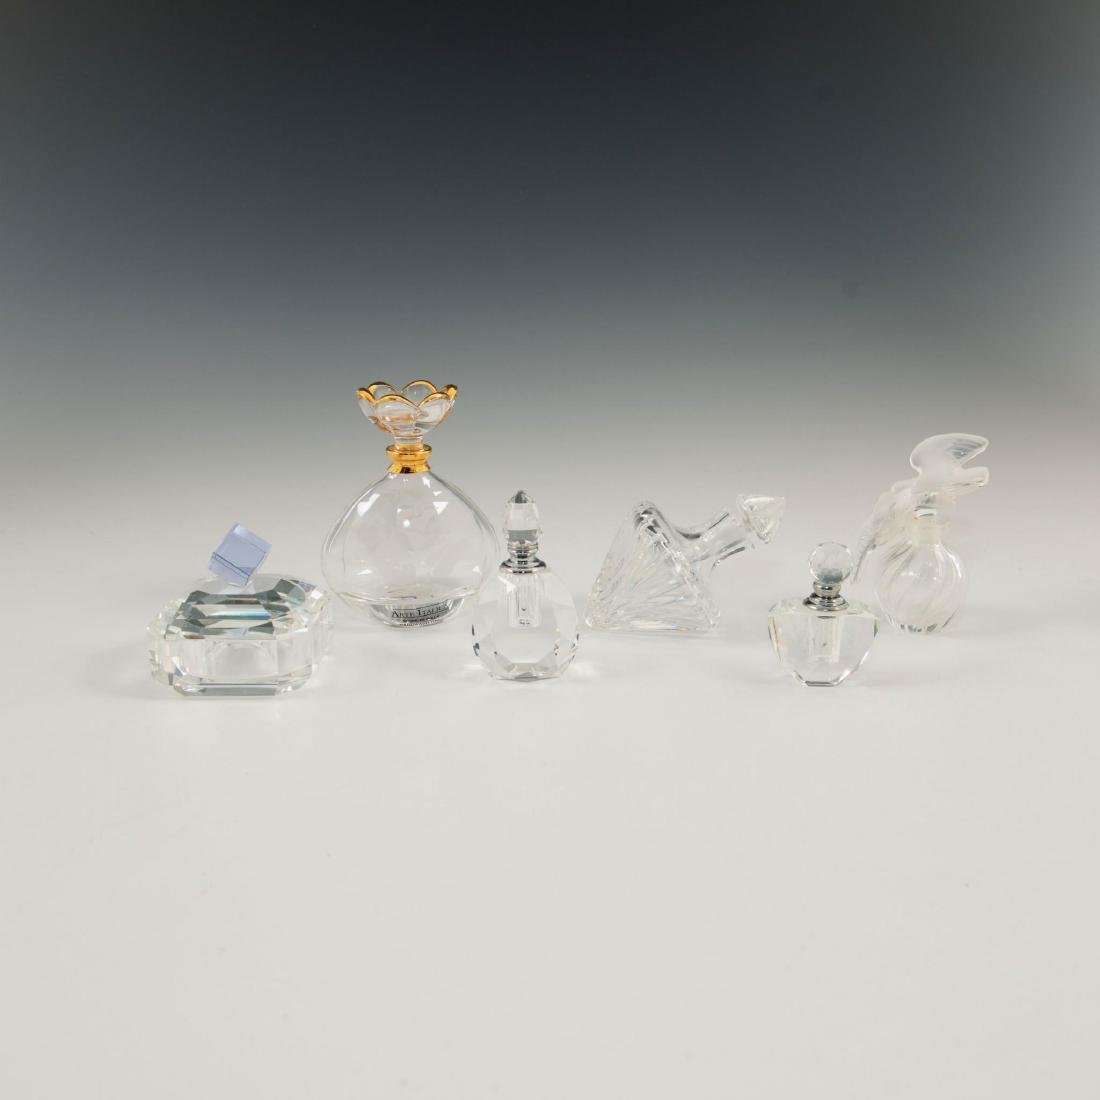 GROUP OF 12 CRYSTAL ART GLASS PERFUME BOTTLES LALIQUE - 7